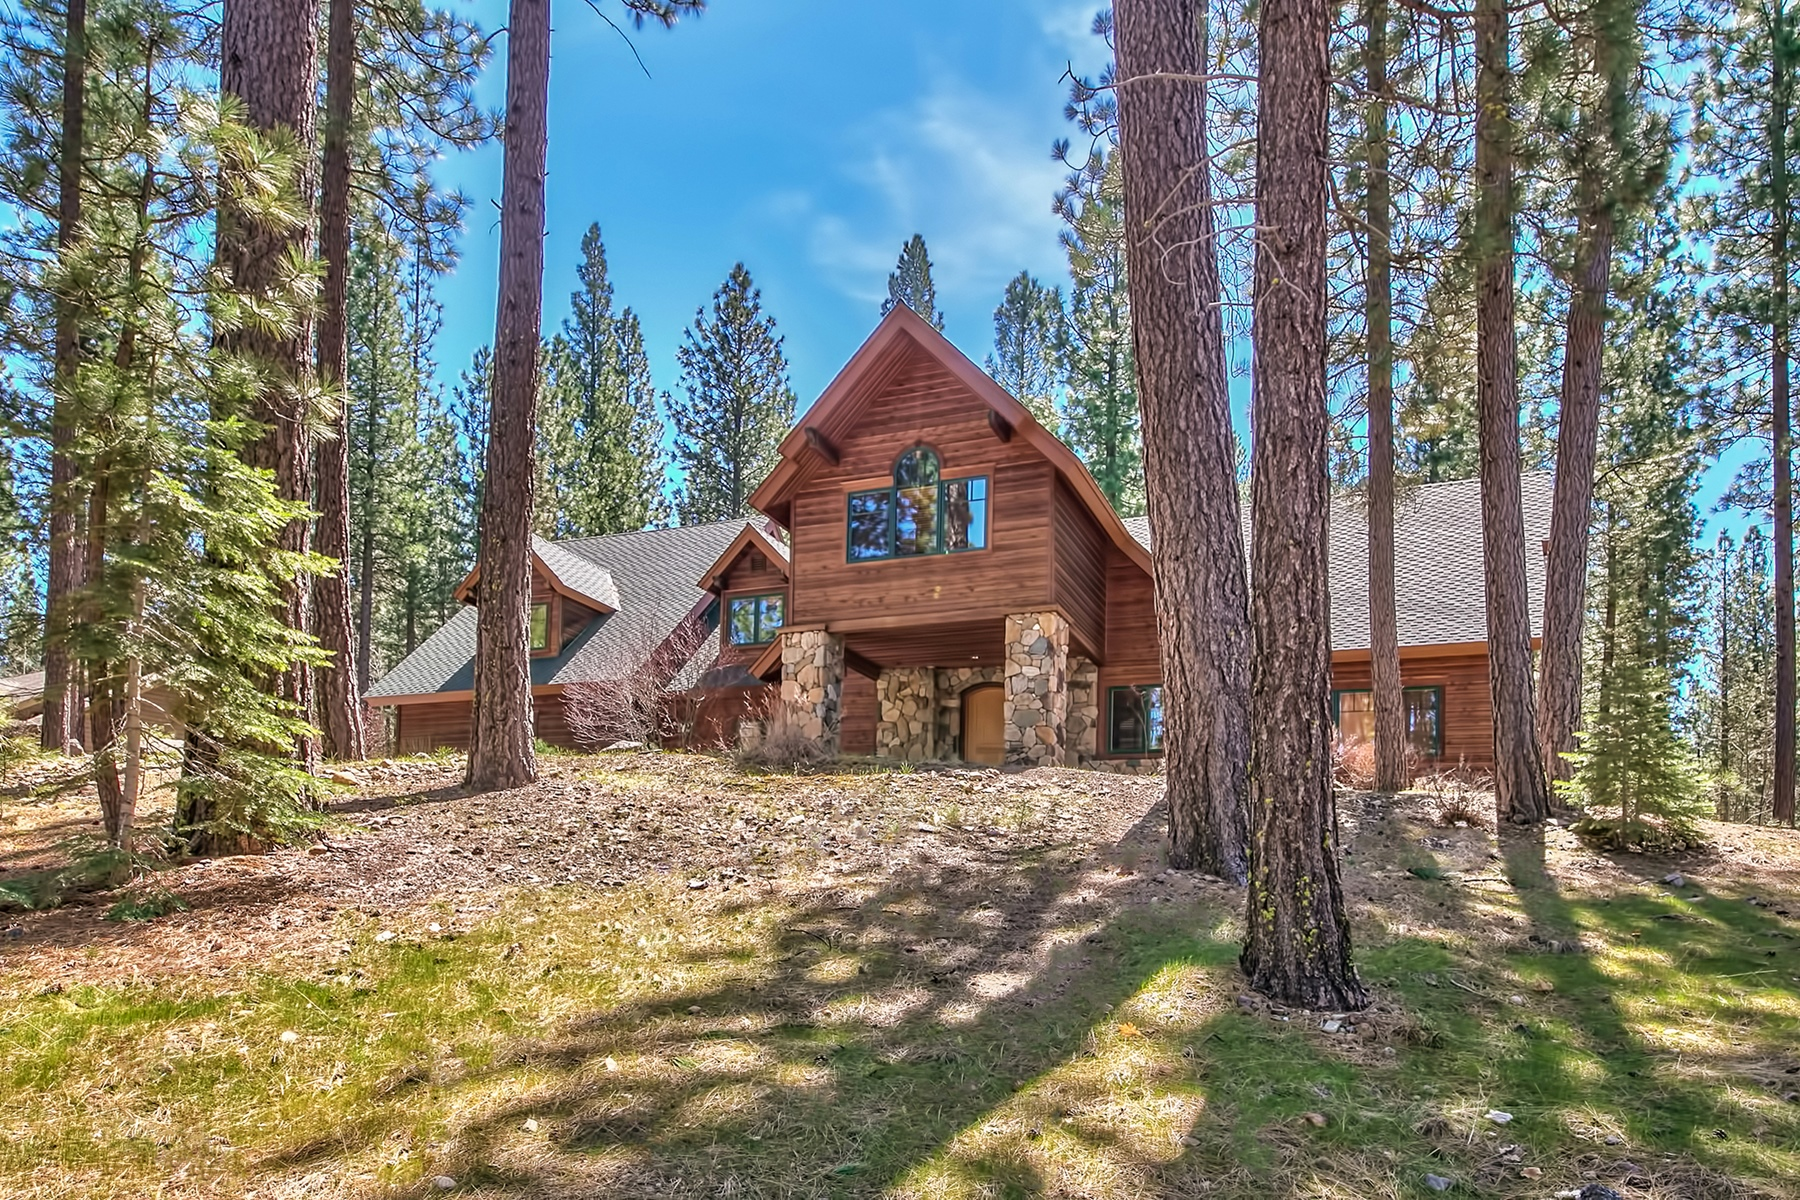 Single Family Home for Active at 596 Miner's Passage 596 Miner's Passage Clio, California 96106 United States